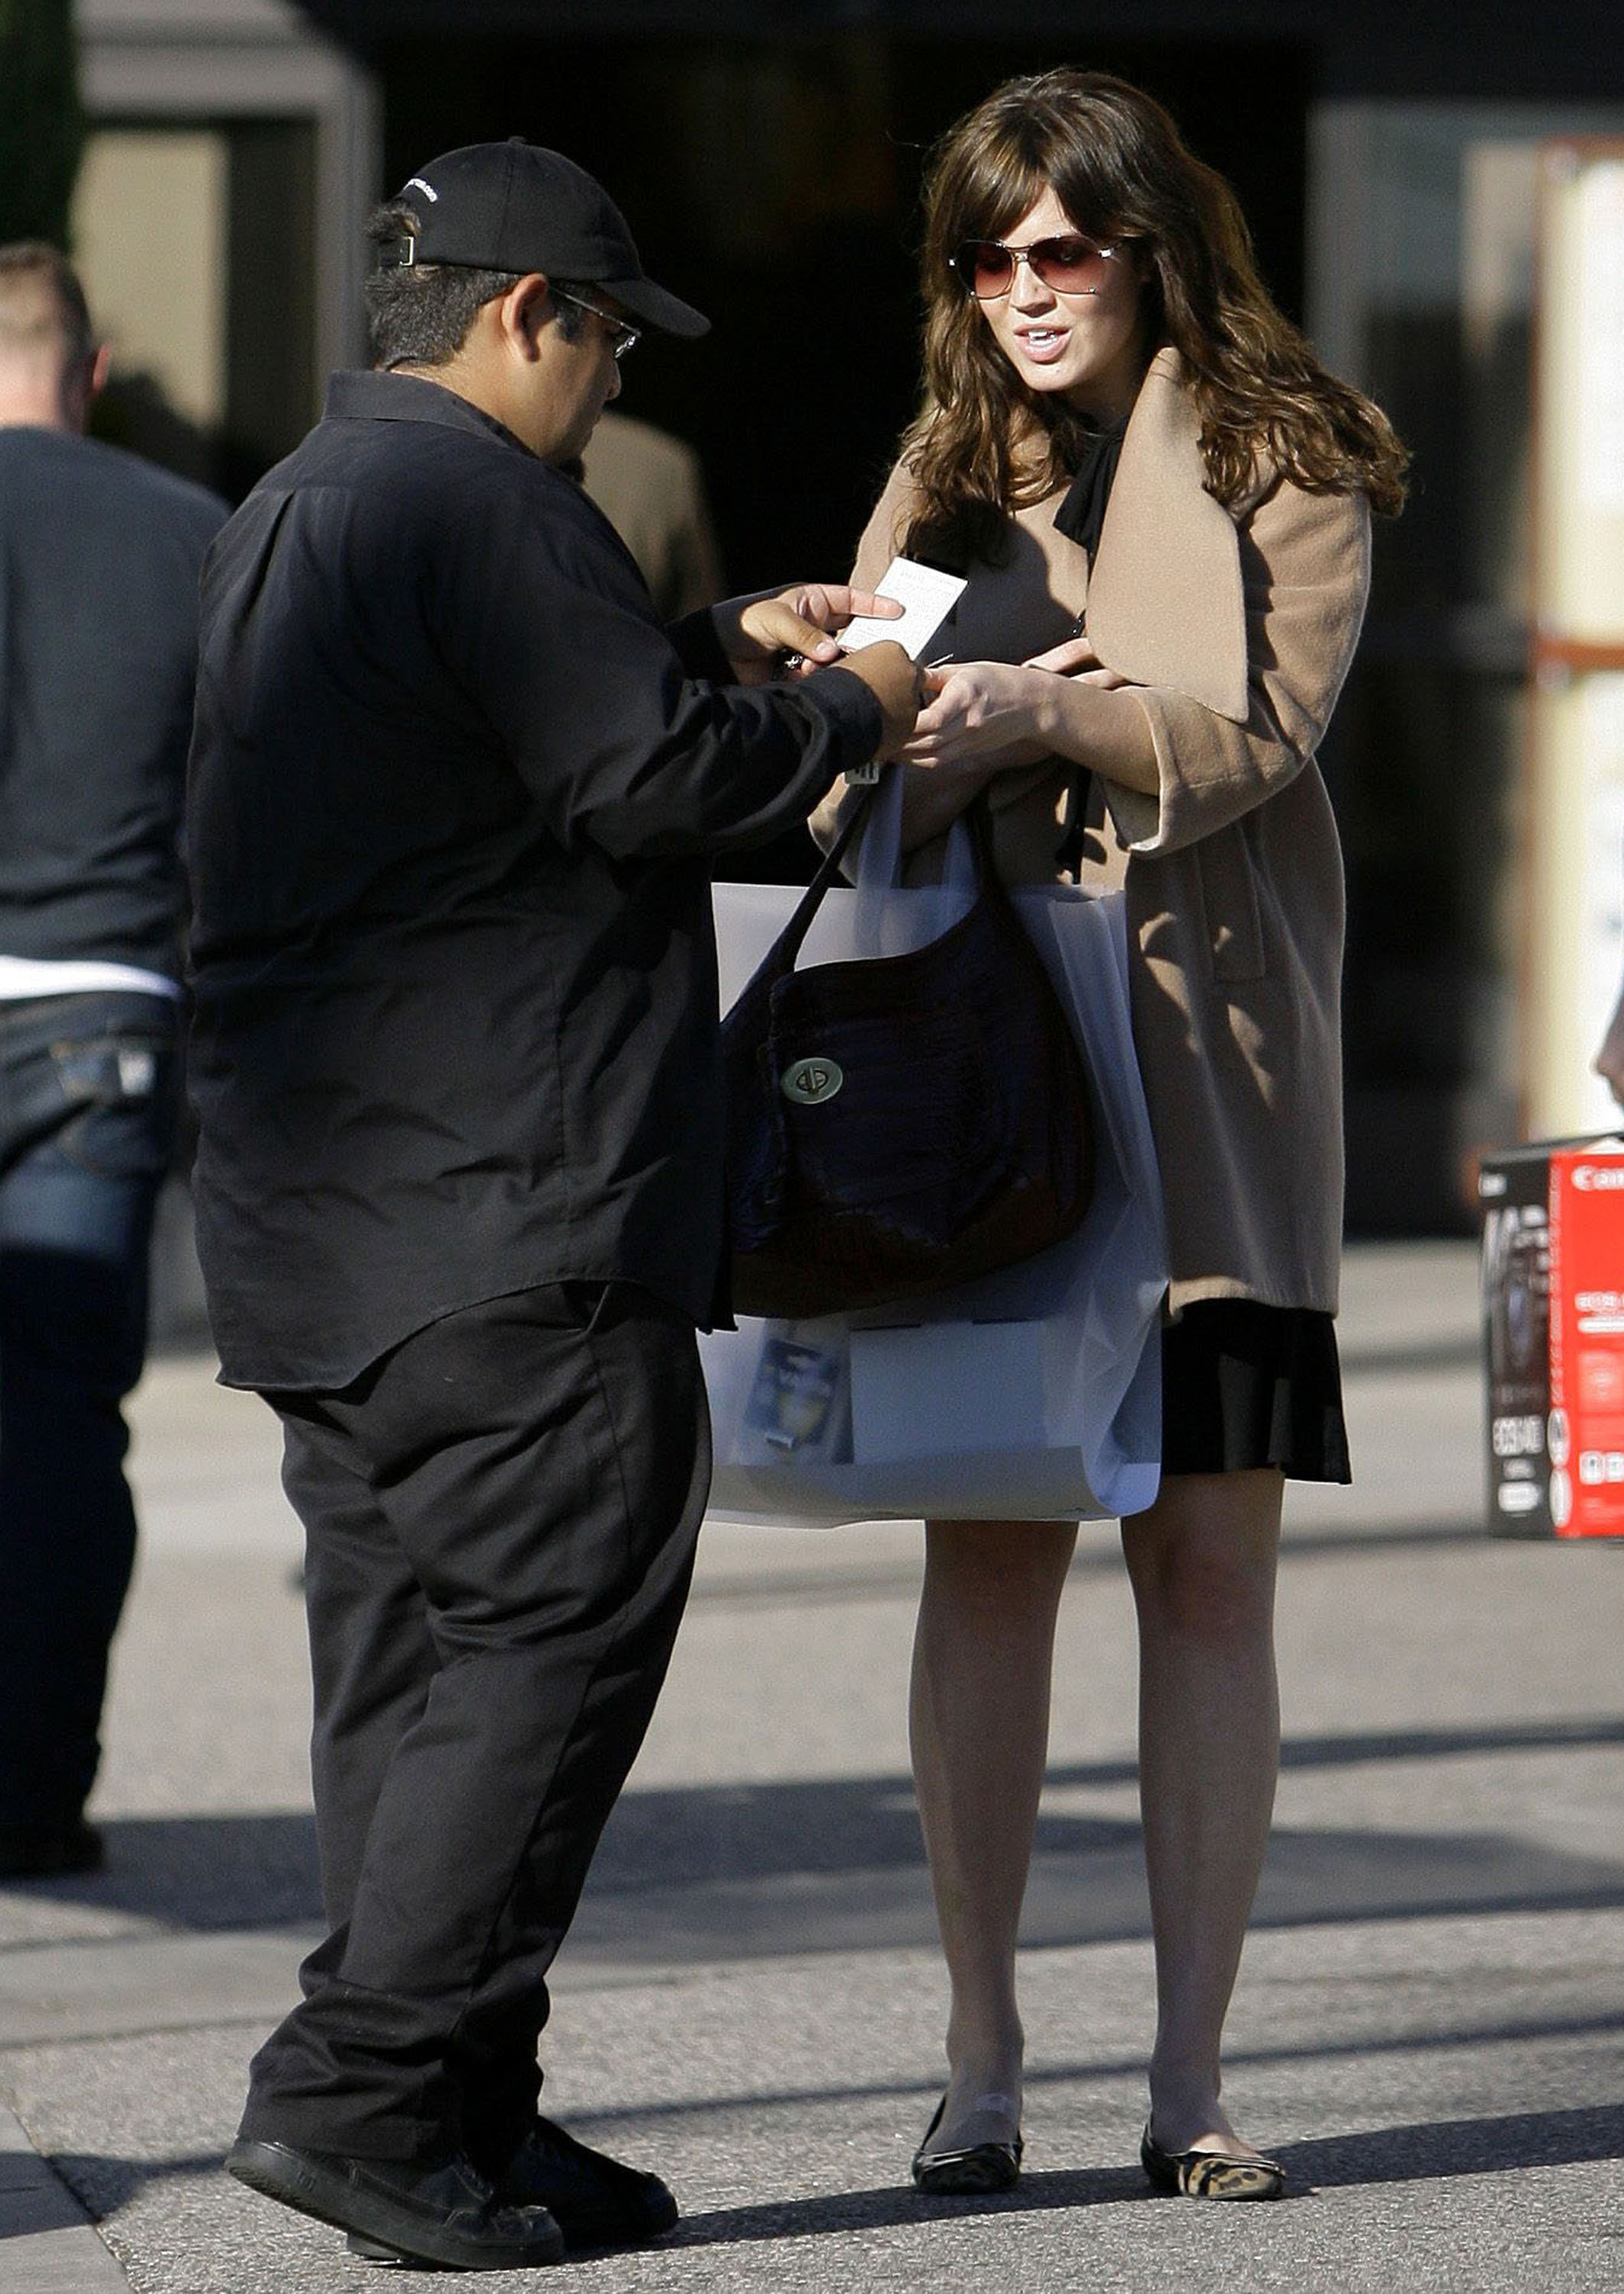 68296_celeb-city.eu_Mandy_Moore_out_and_about_in_West_Hollywood_10.12.2007_34_122_51lo.jpg